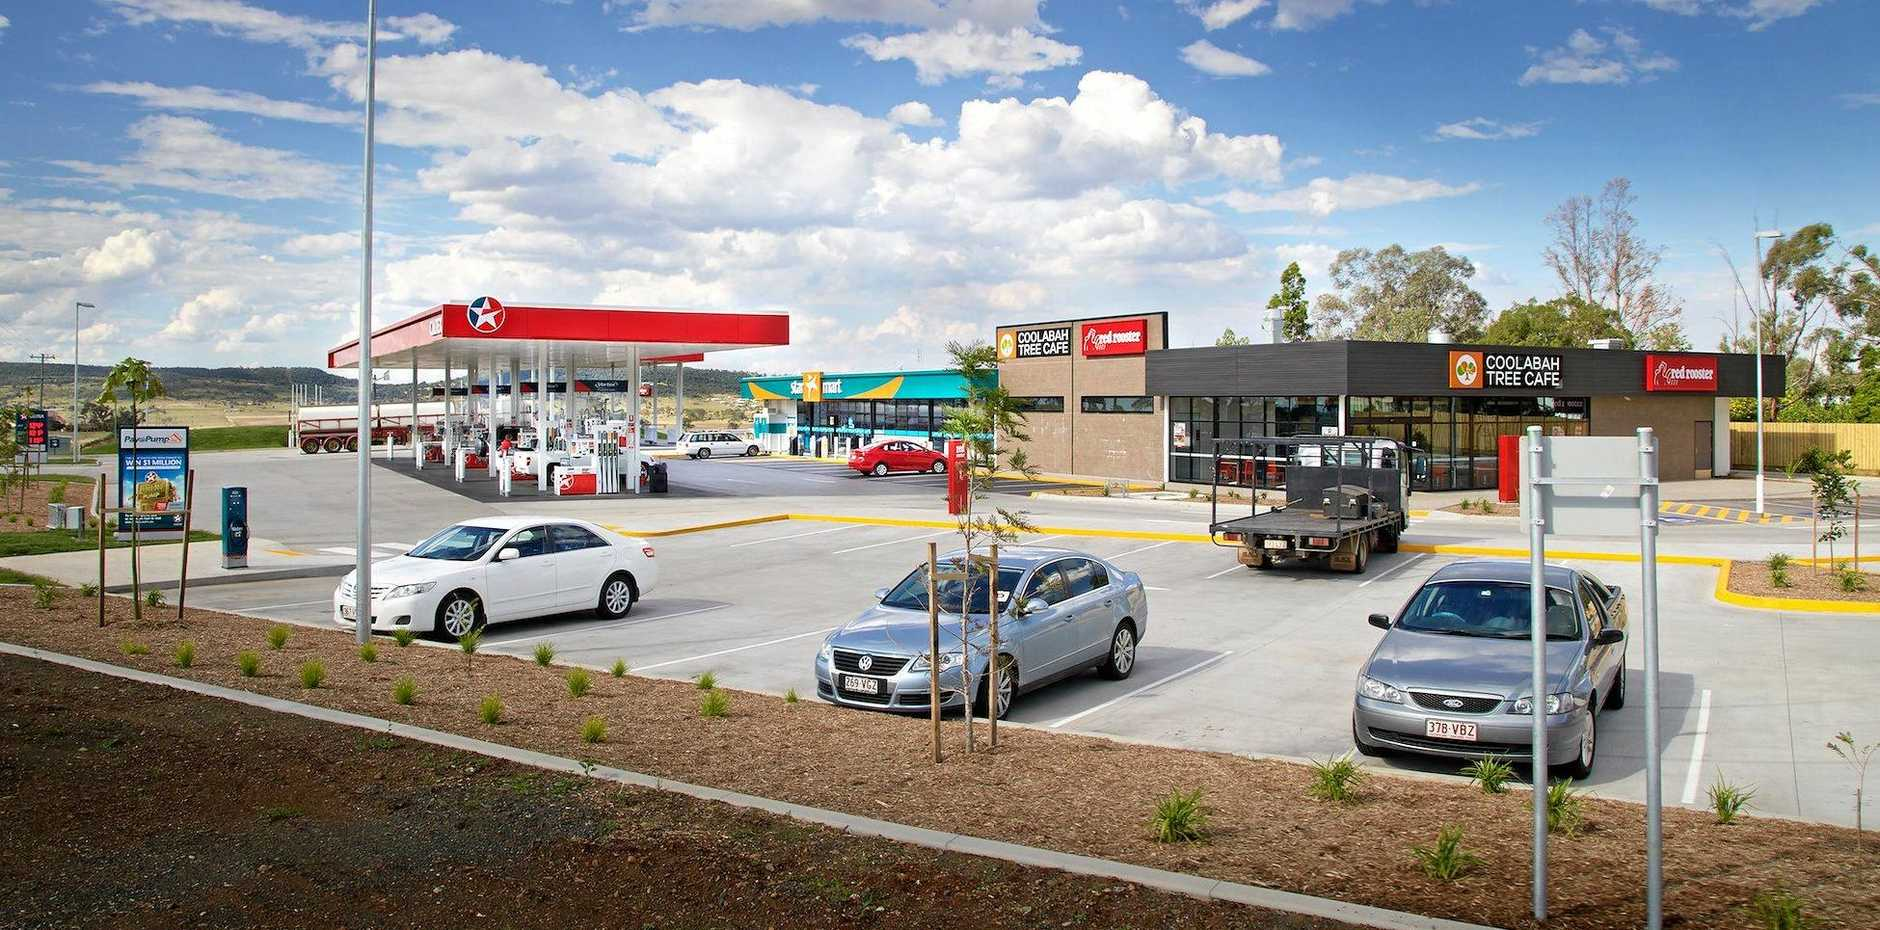 TRUCK STOP: The owner of the Caltex service station on the Warrego Highway in Charlton needs a new tenant for the cafe section after Coolibah Tree Cafe exited.